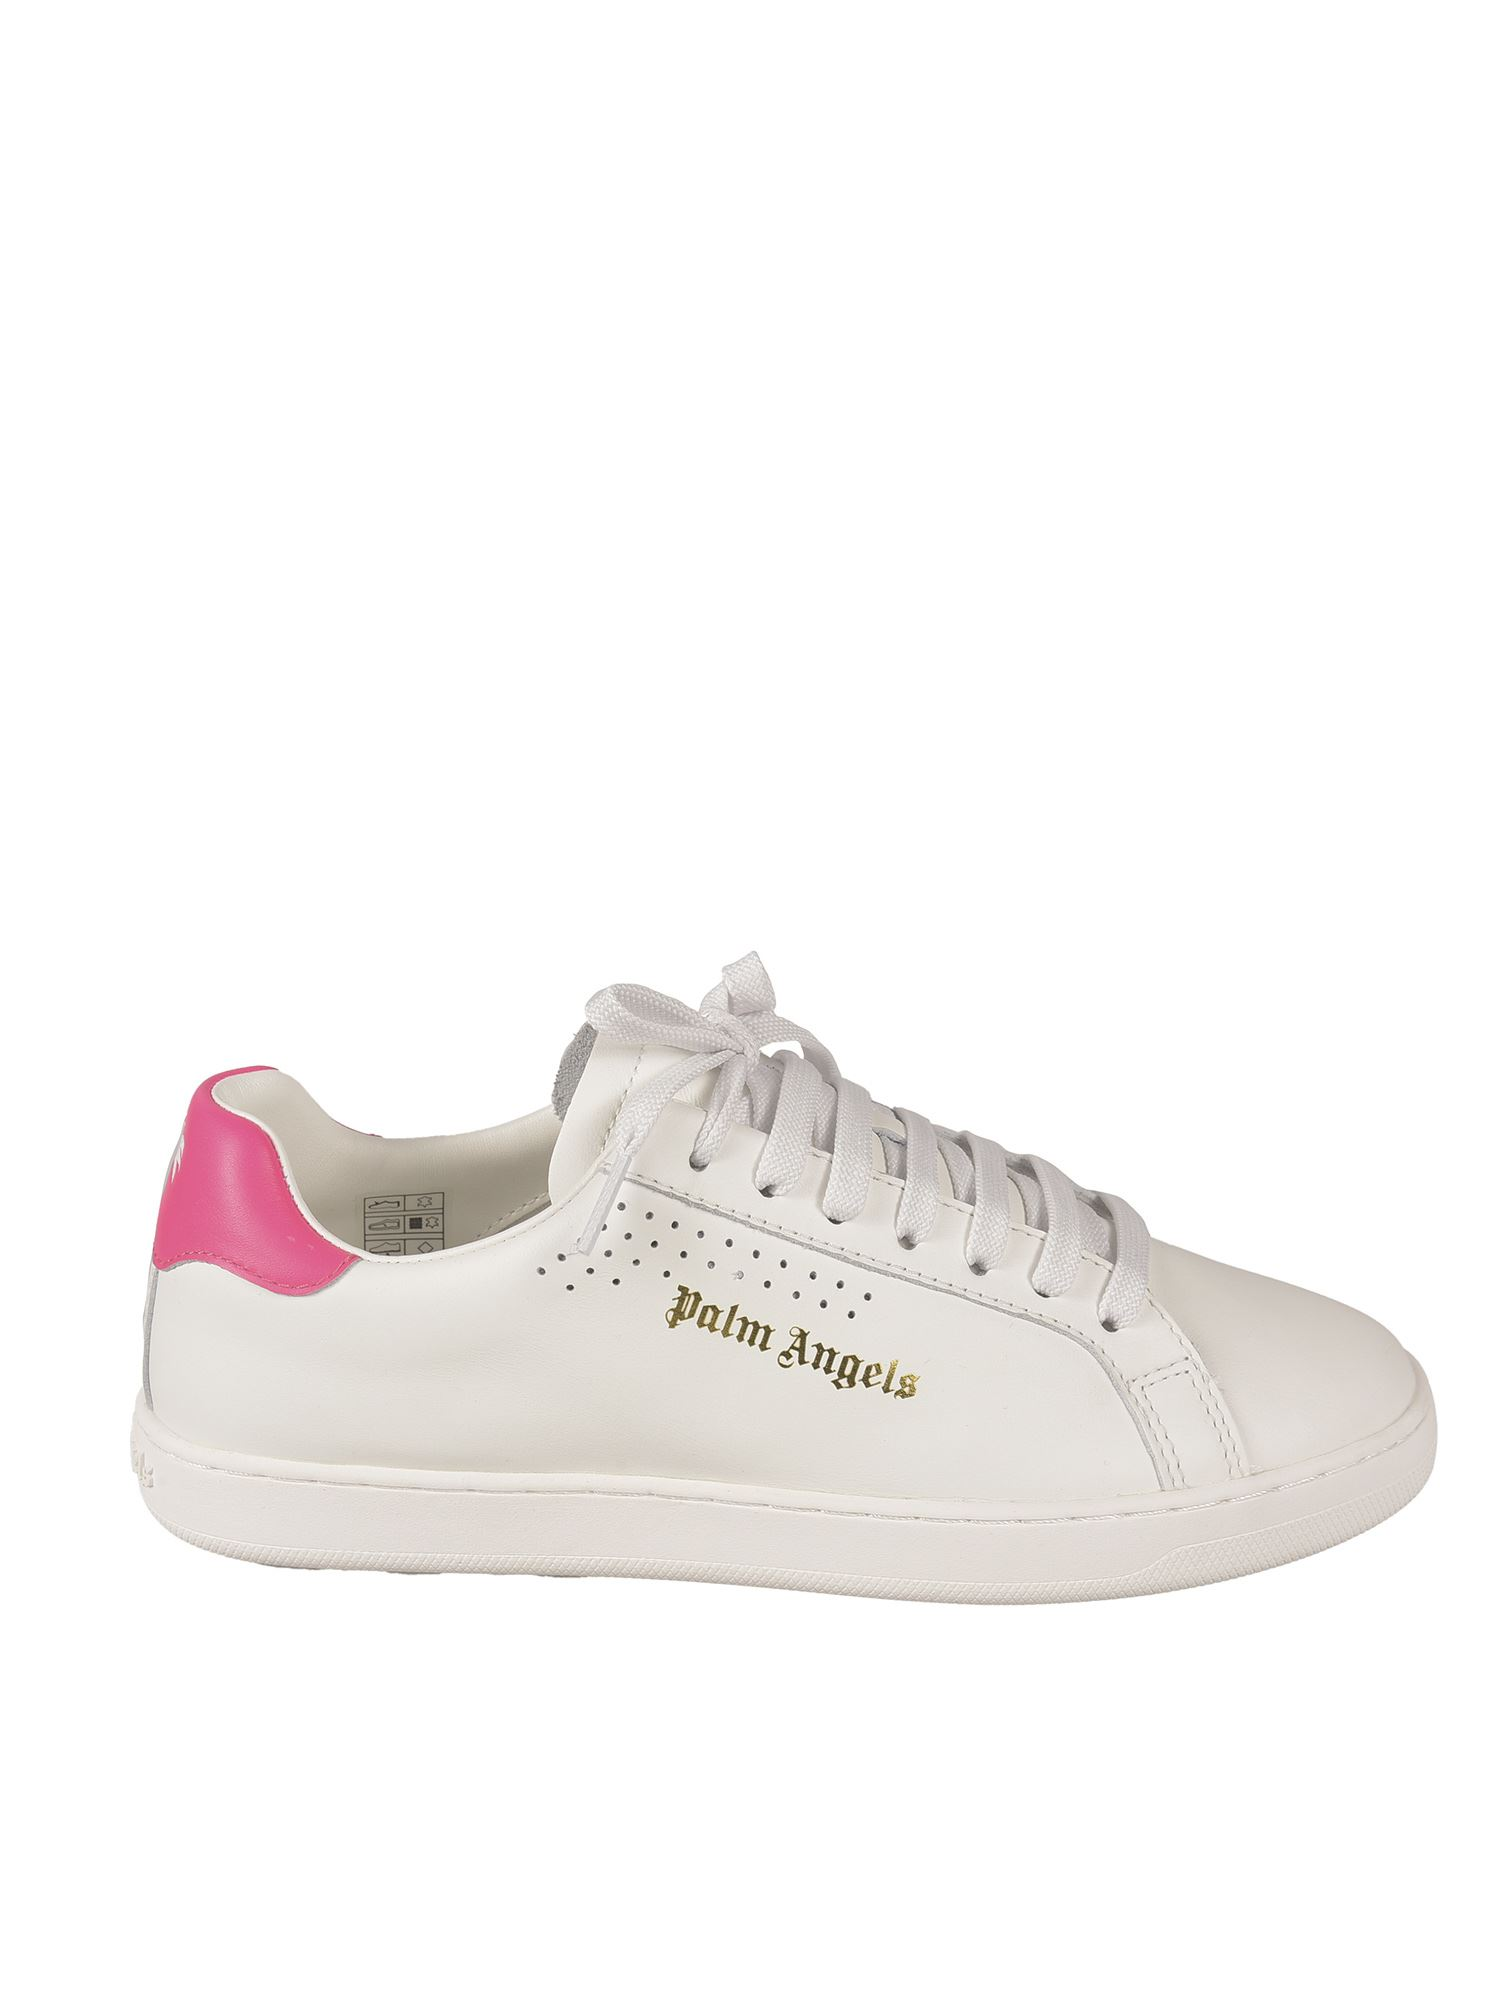 Palm Angels LOGO SNEAKERS IN WHITE AND FUCHSIA